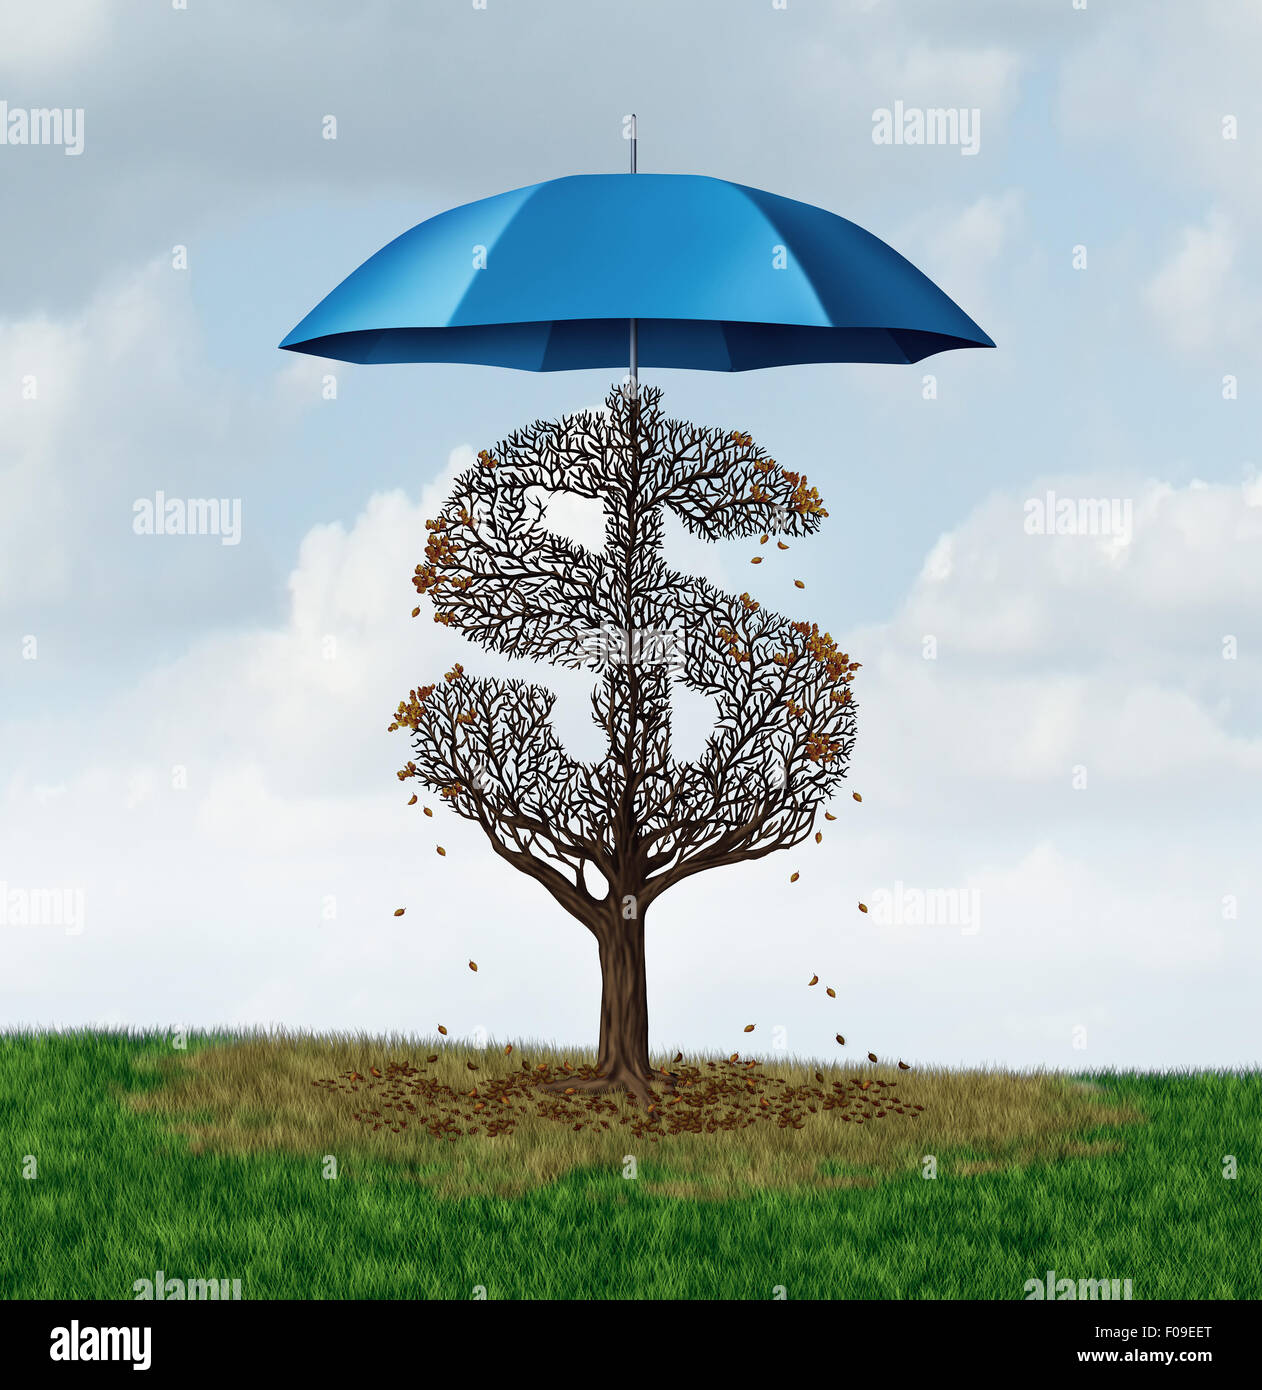 Economic protectionism policy and financial closed trade restrictions as a tree shaped as a money dollar sign losing - Stock Image